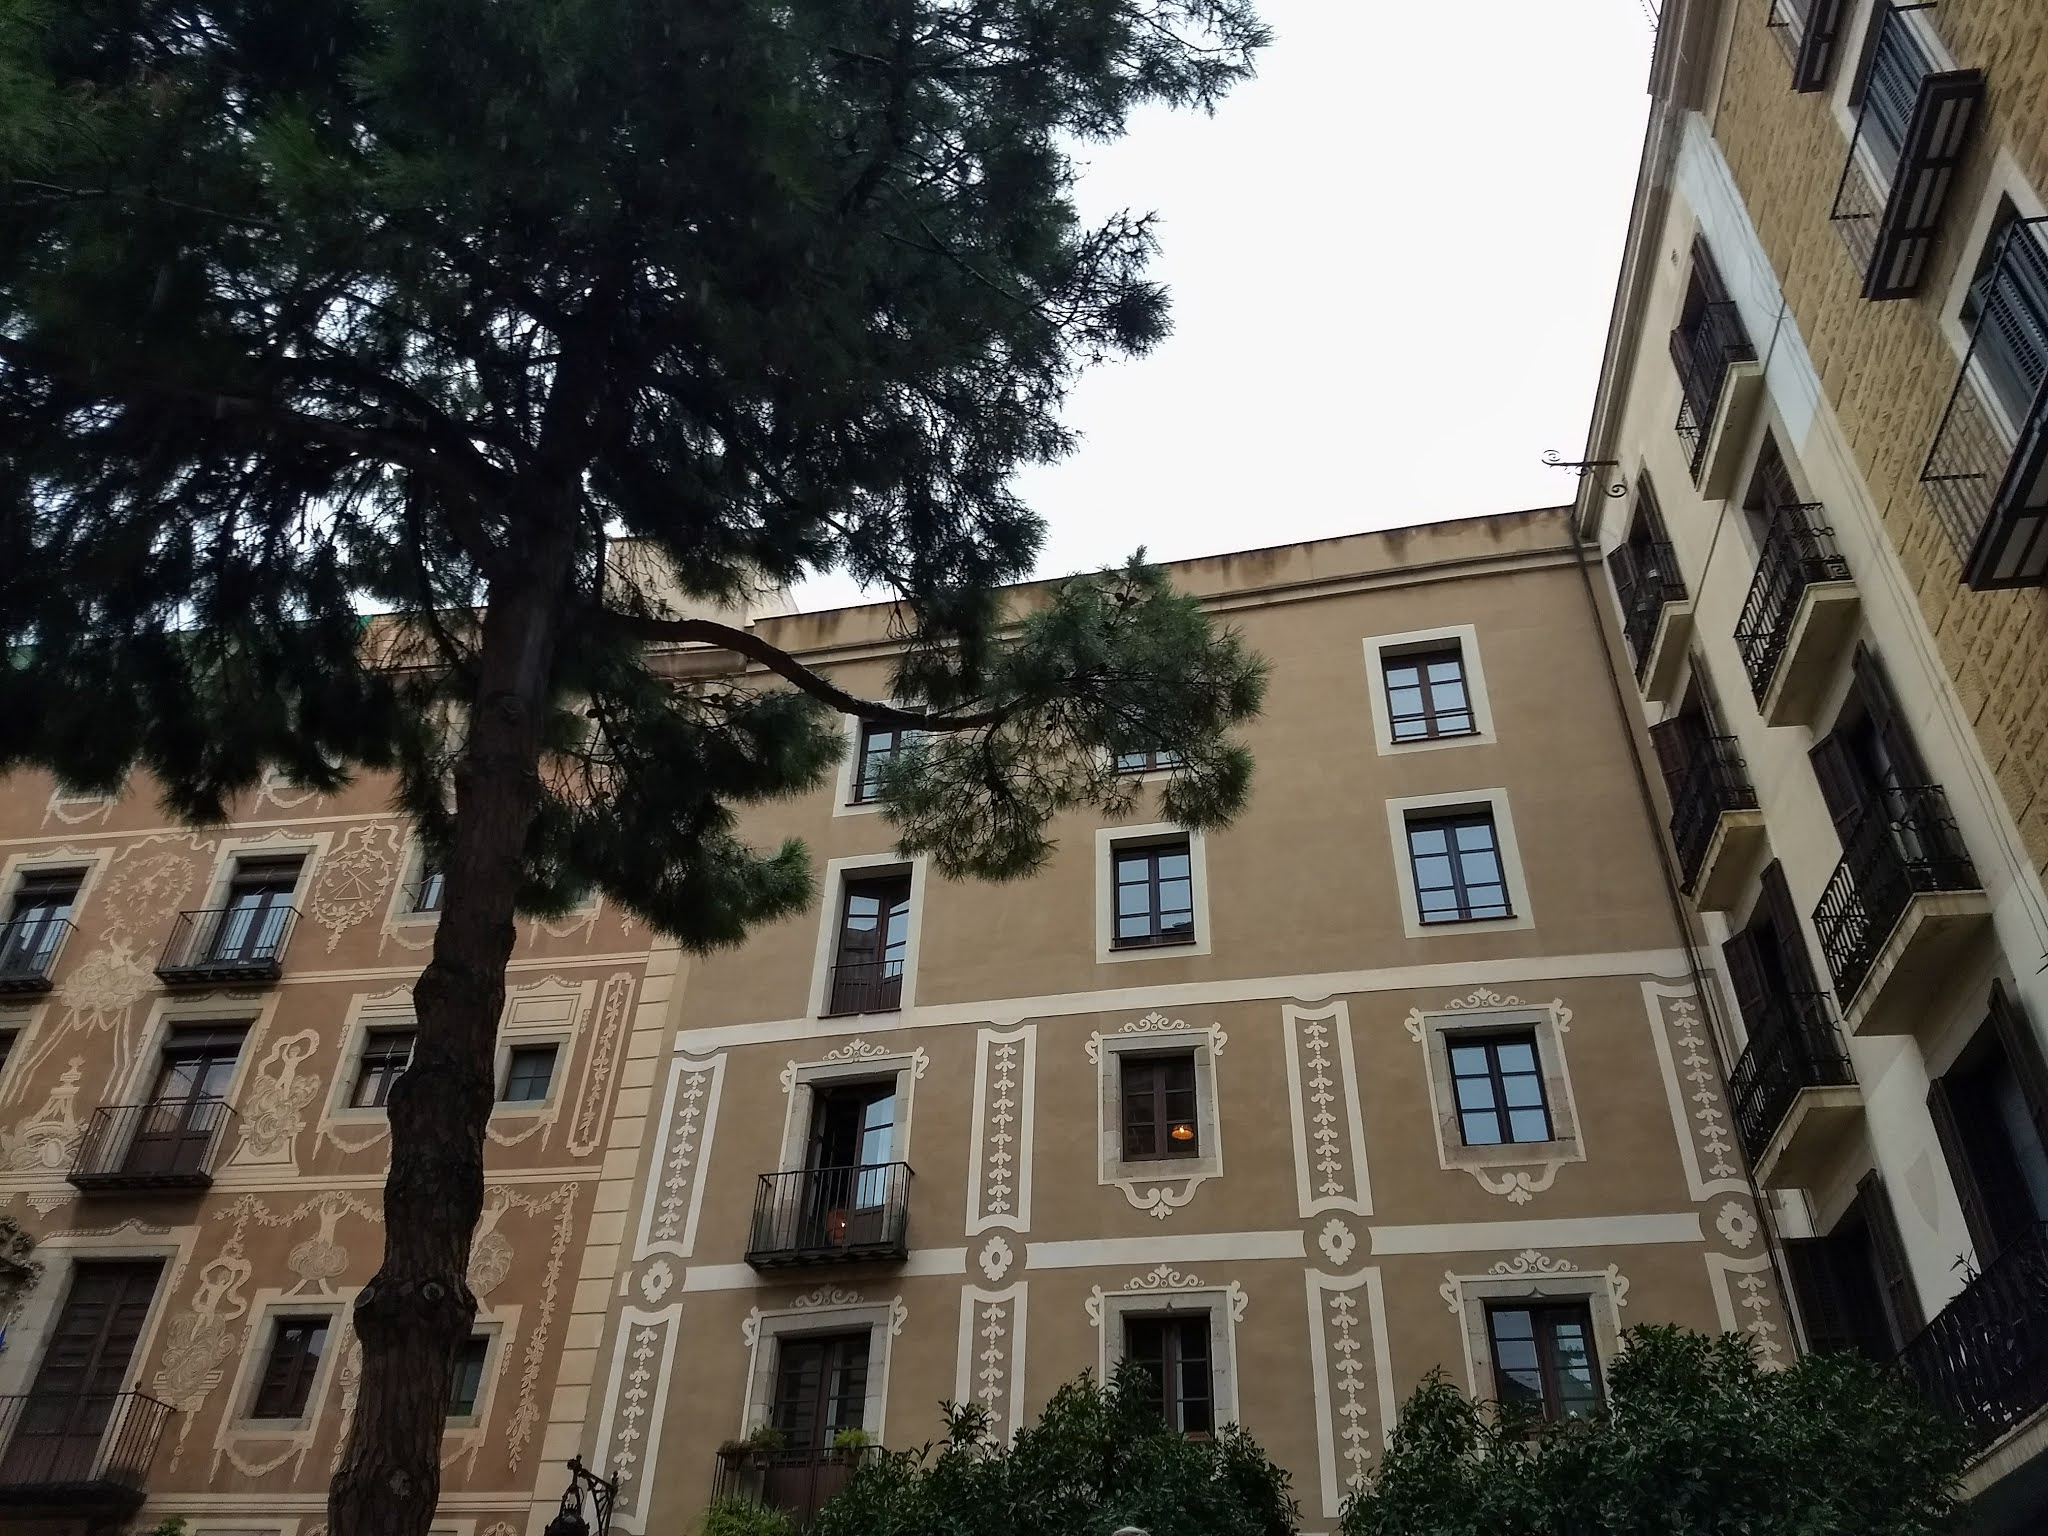 Looking up at a pine tree and building facade on Plaza del Pino.